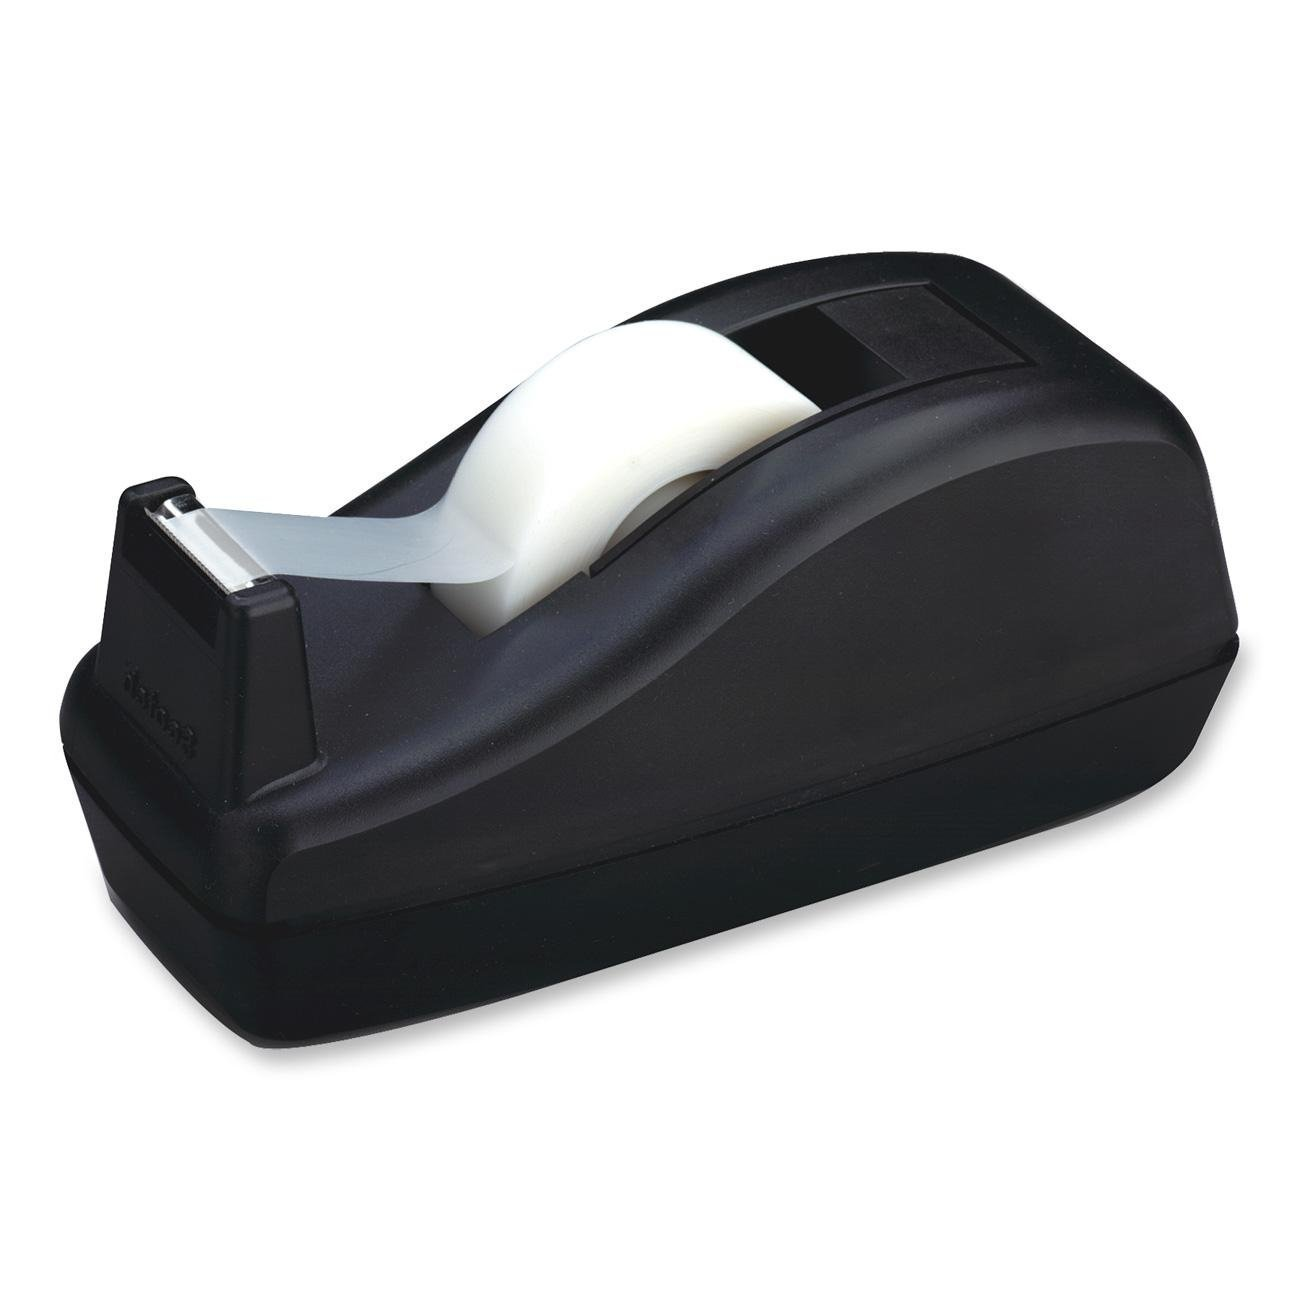 Scotch Deluxe Desktop Tape Dispenser, C-40, Black, for 1 Inch Core Tapes, 4 Dispensers